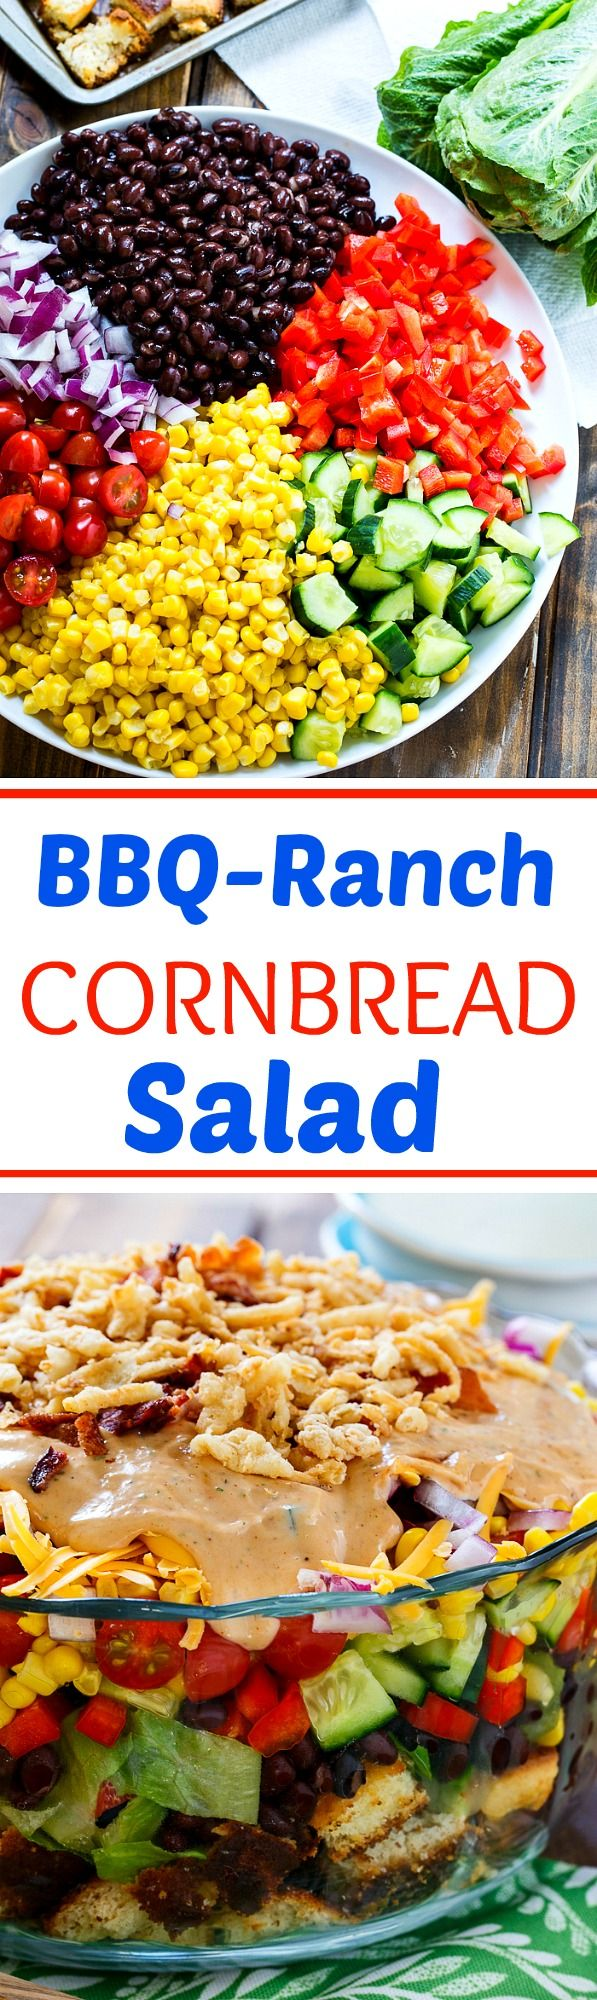 BBQ-Ranch Cornbread Salad is a southwestern twist on a southern cornbread salad. Perfect for potlucks and picnics.  Can be made ahead of time and feeds a hungry crowd.